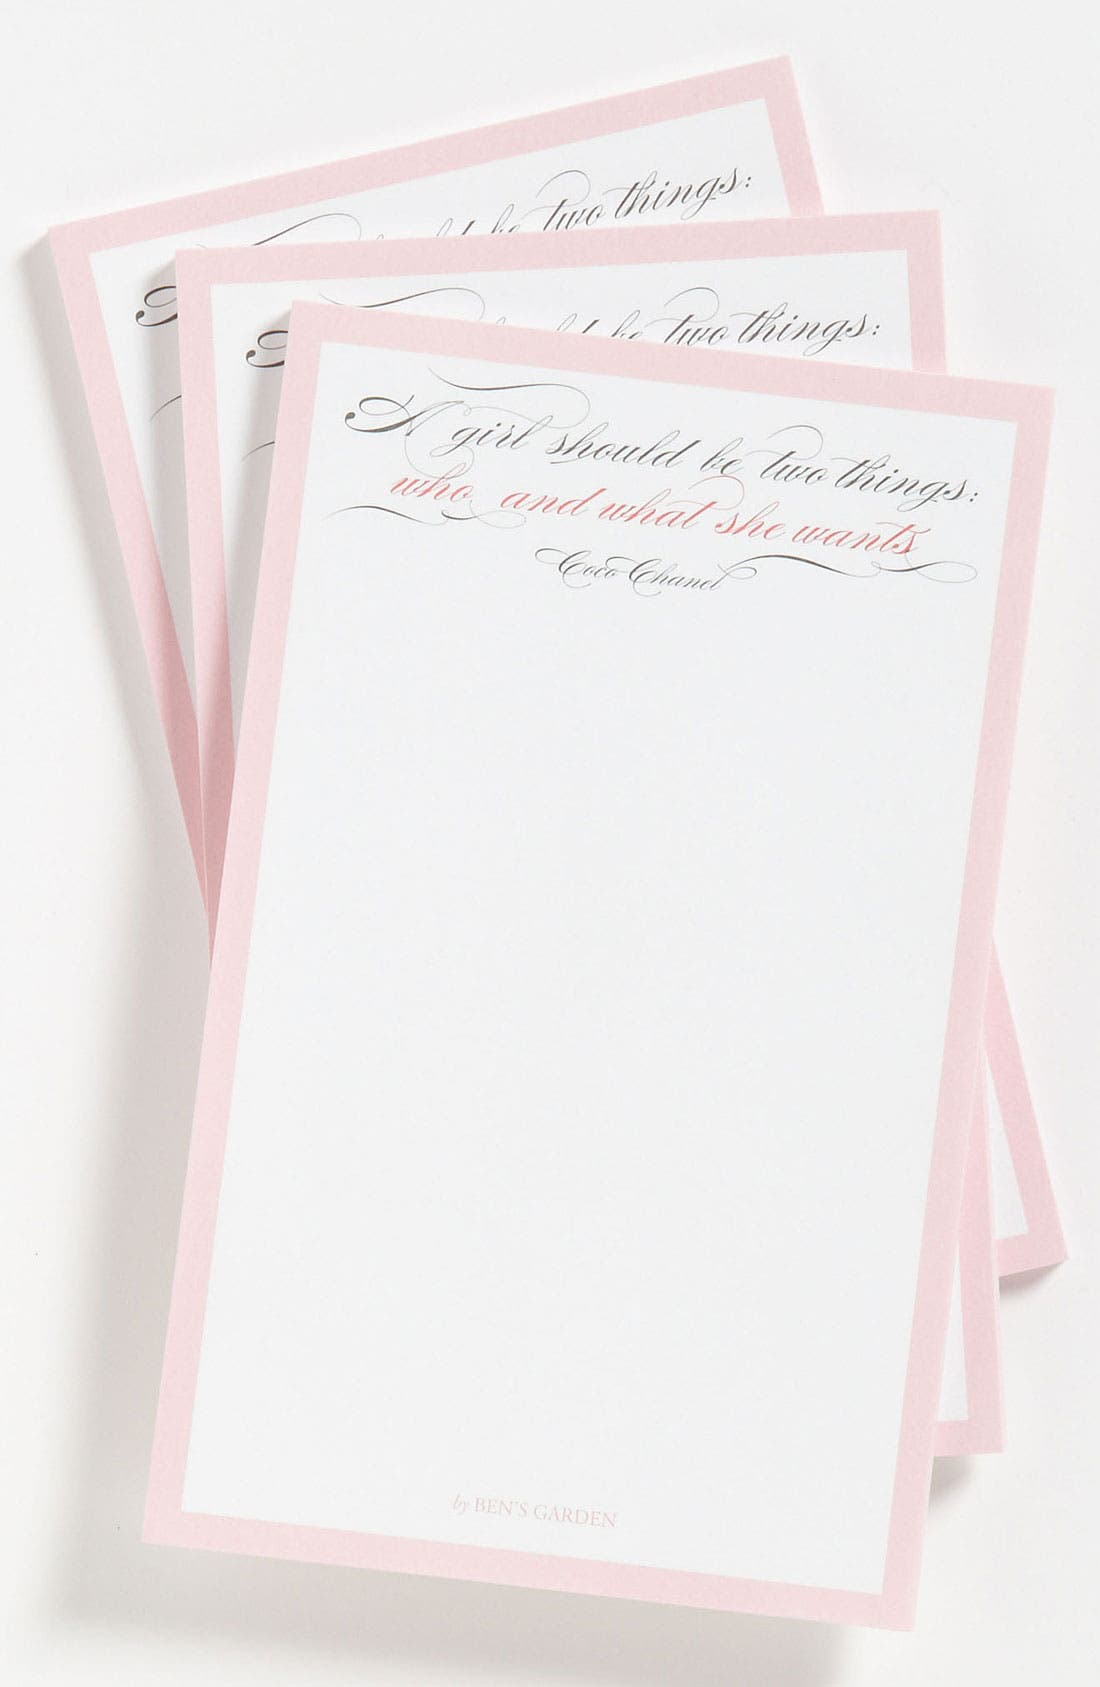 Alternate Image 1 Selected - Ben's Garden 'A Girl Should Be Two Things' Notepads (3-Pack)